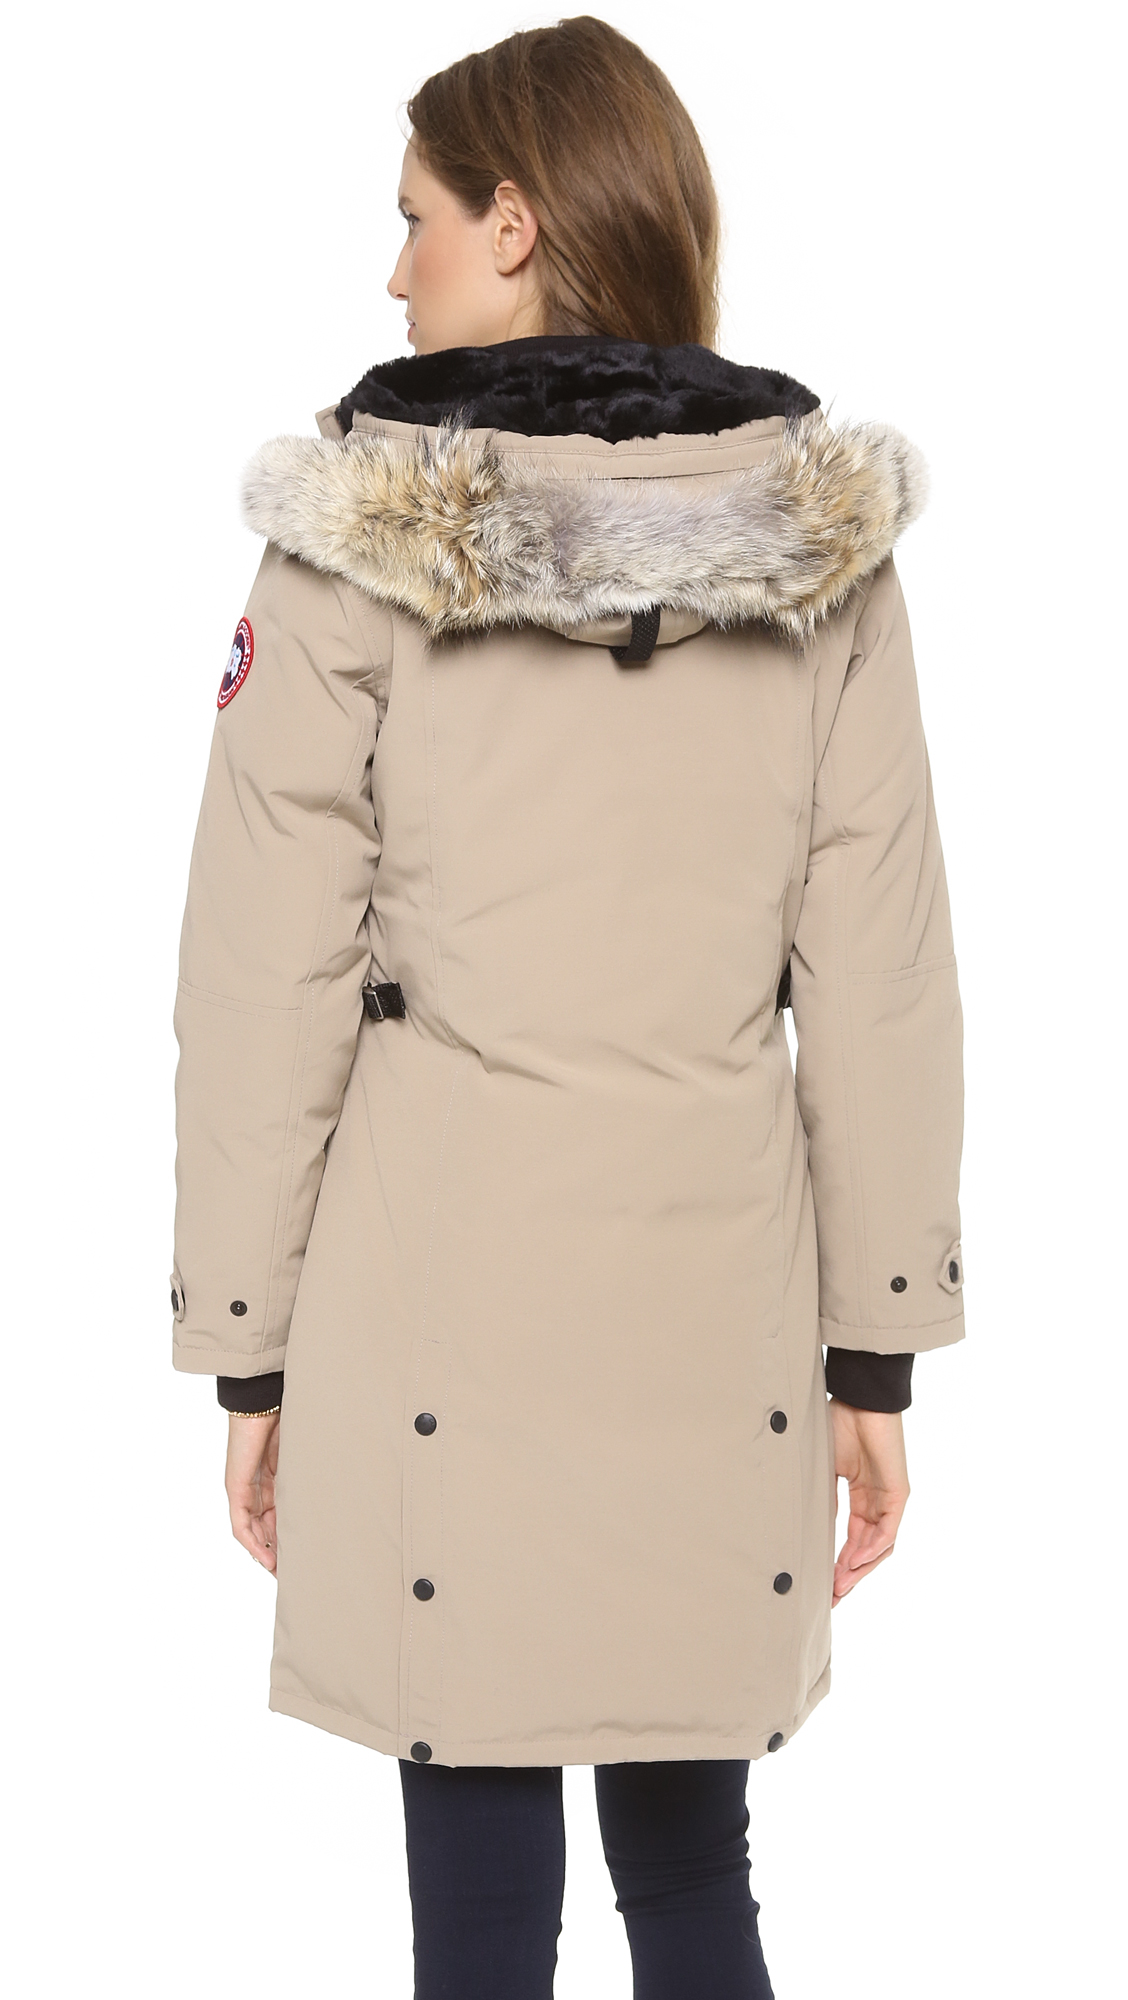 Michael Kors Wool Blend Double Breasted Peacoat A broad collar and crisp tailoring define a classic wool-blend peacoat modernized in a comfortable, masculine profile that goes easy on the details save for an adjustable belt at the collar.